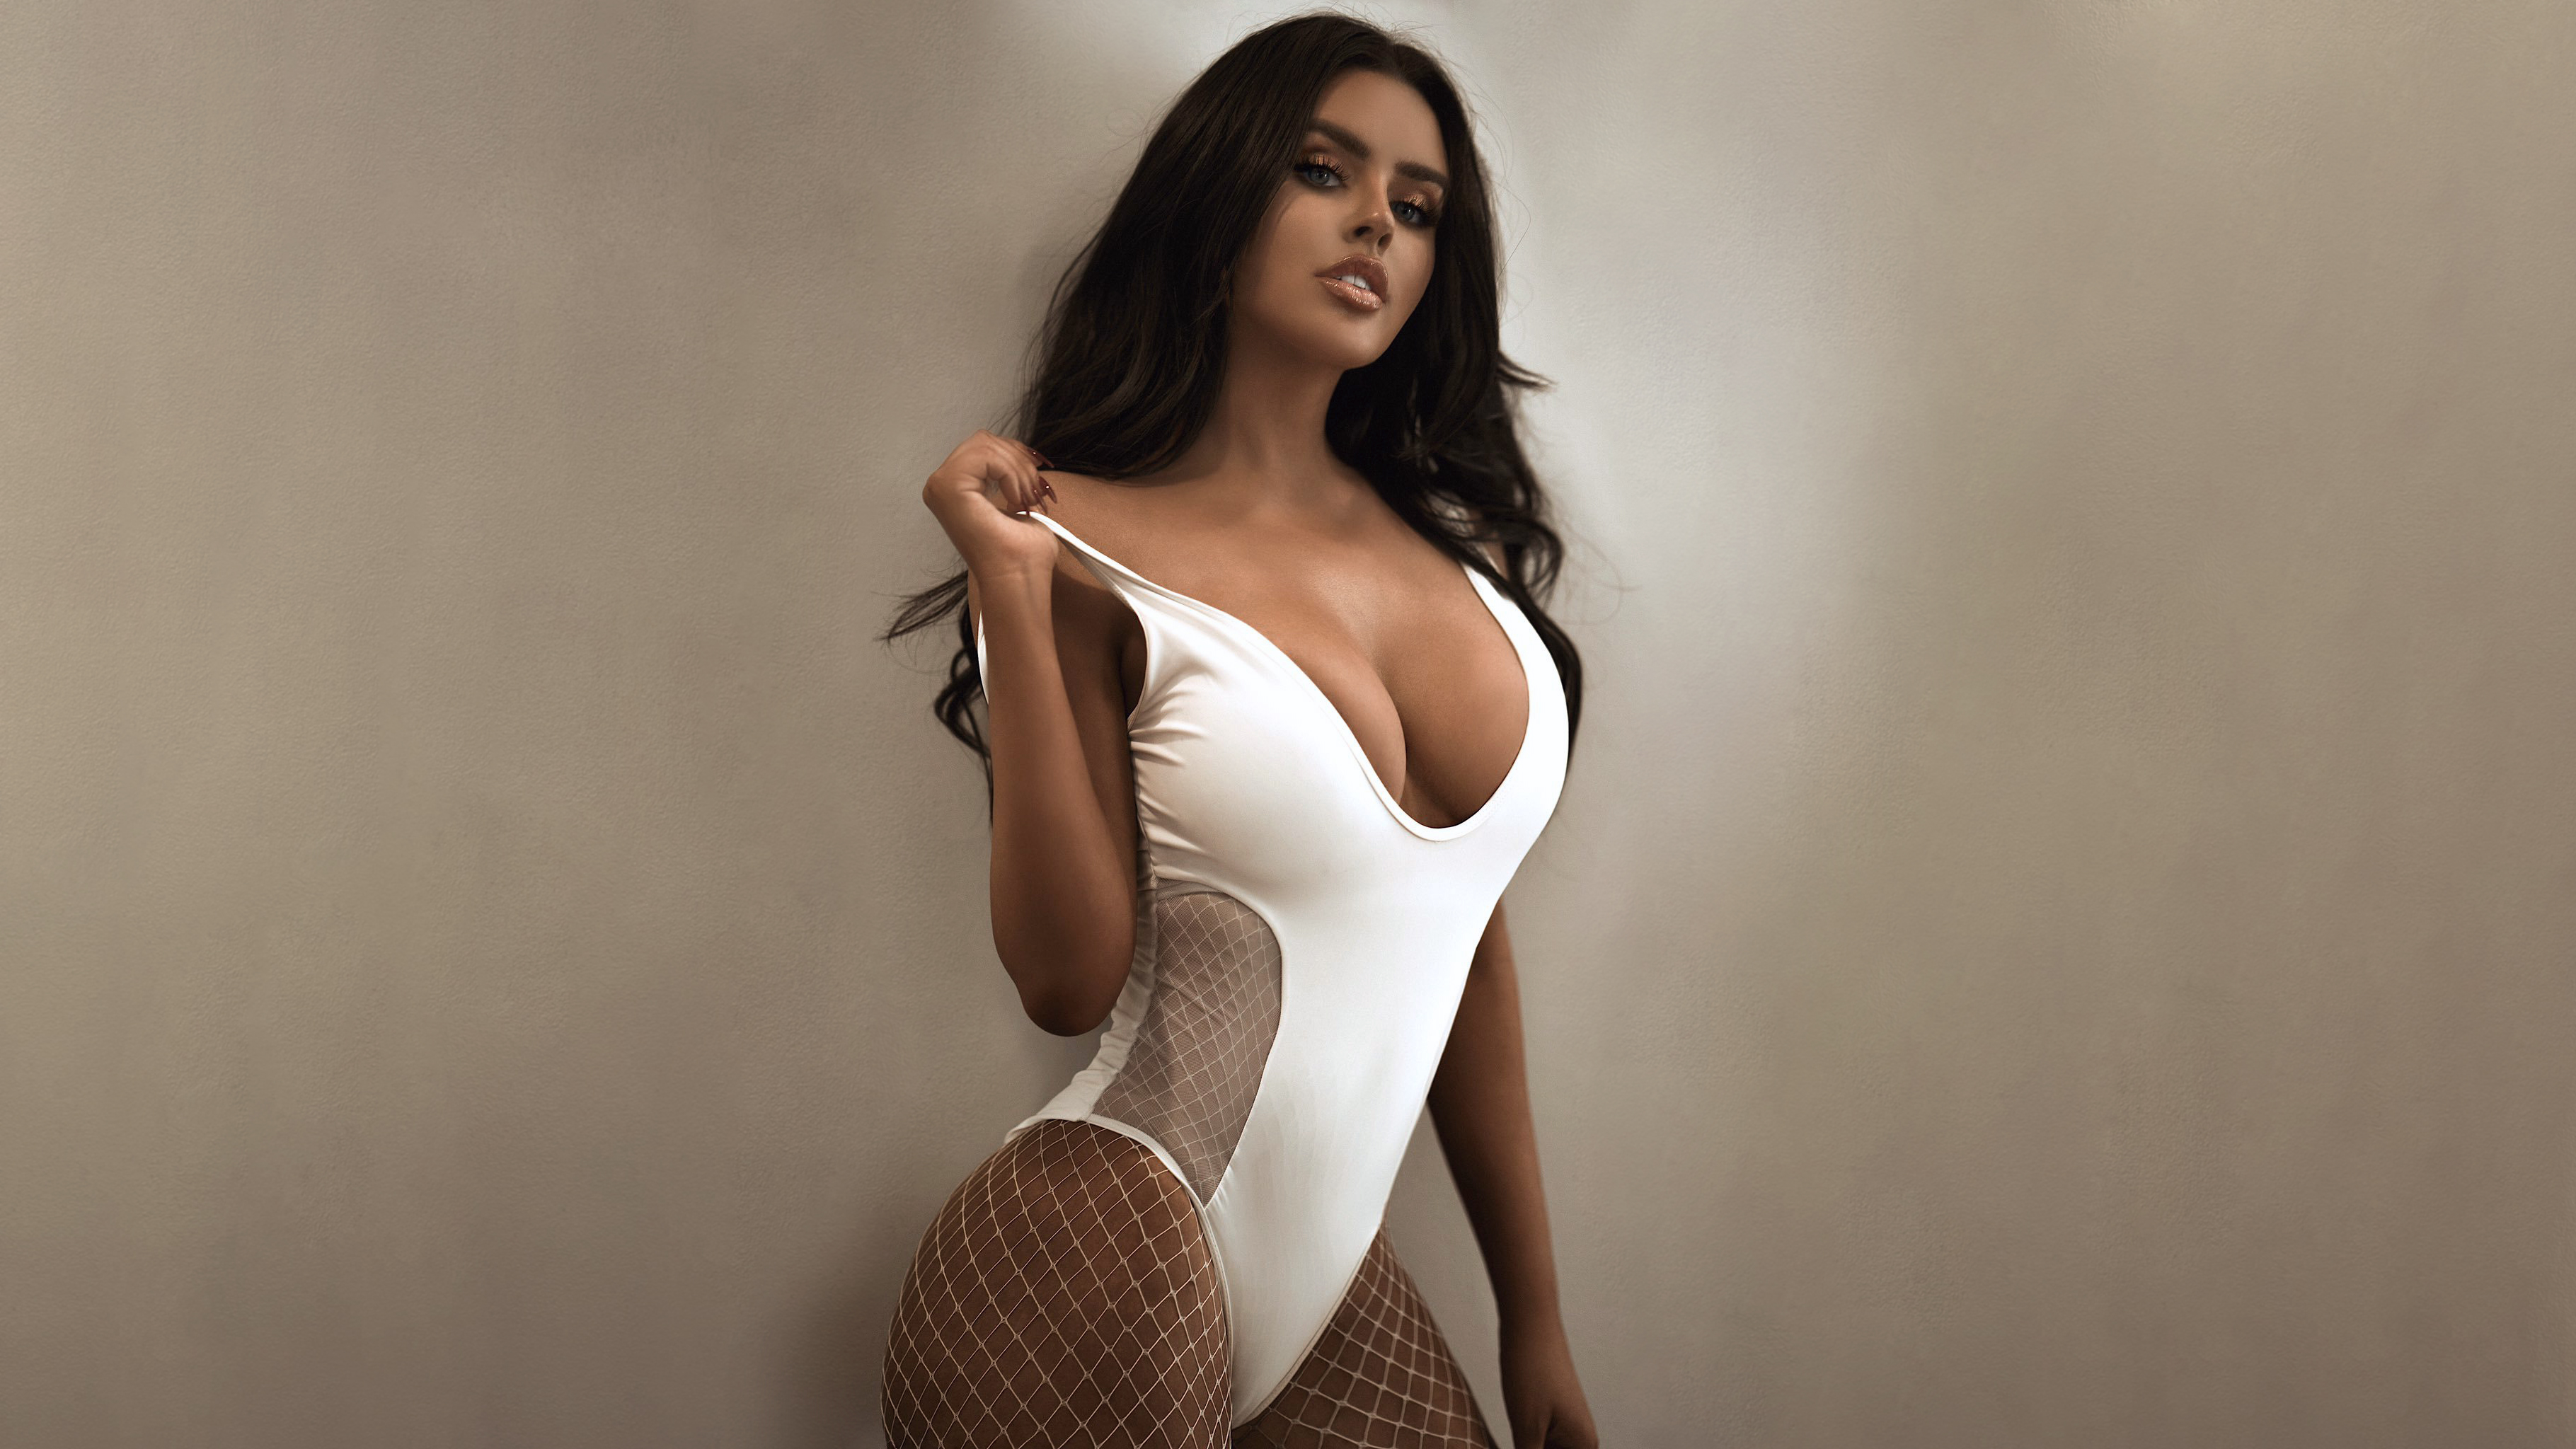 Abigail Ratchford Hot Swimsuit Wallpapers - Abigail Ratchford Hot Swimsuit Wallpapers